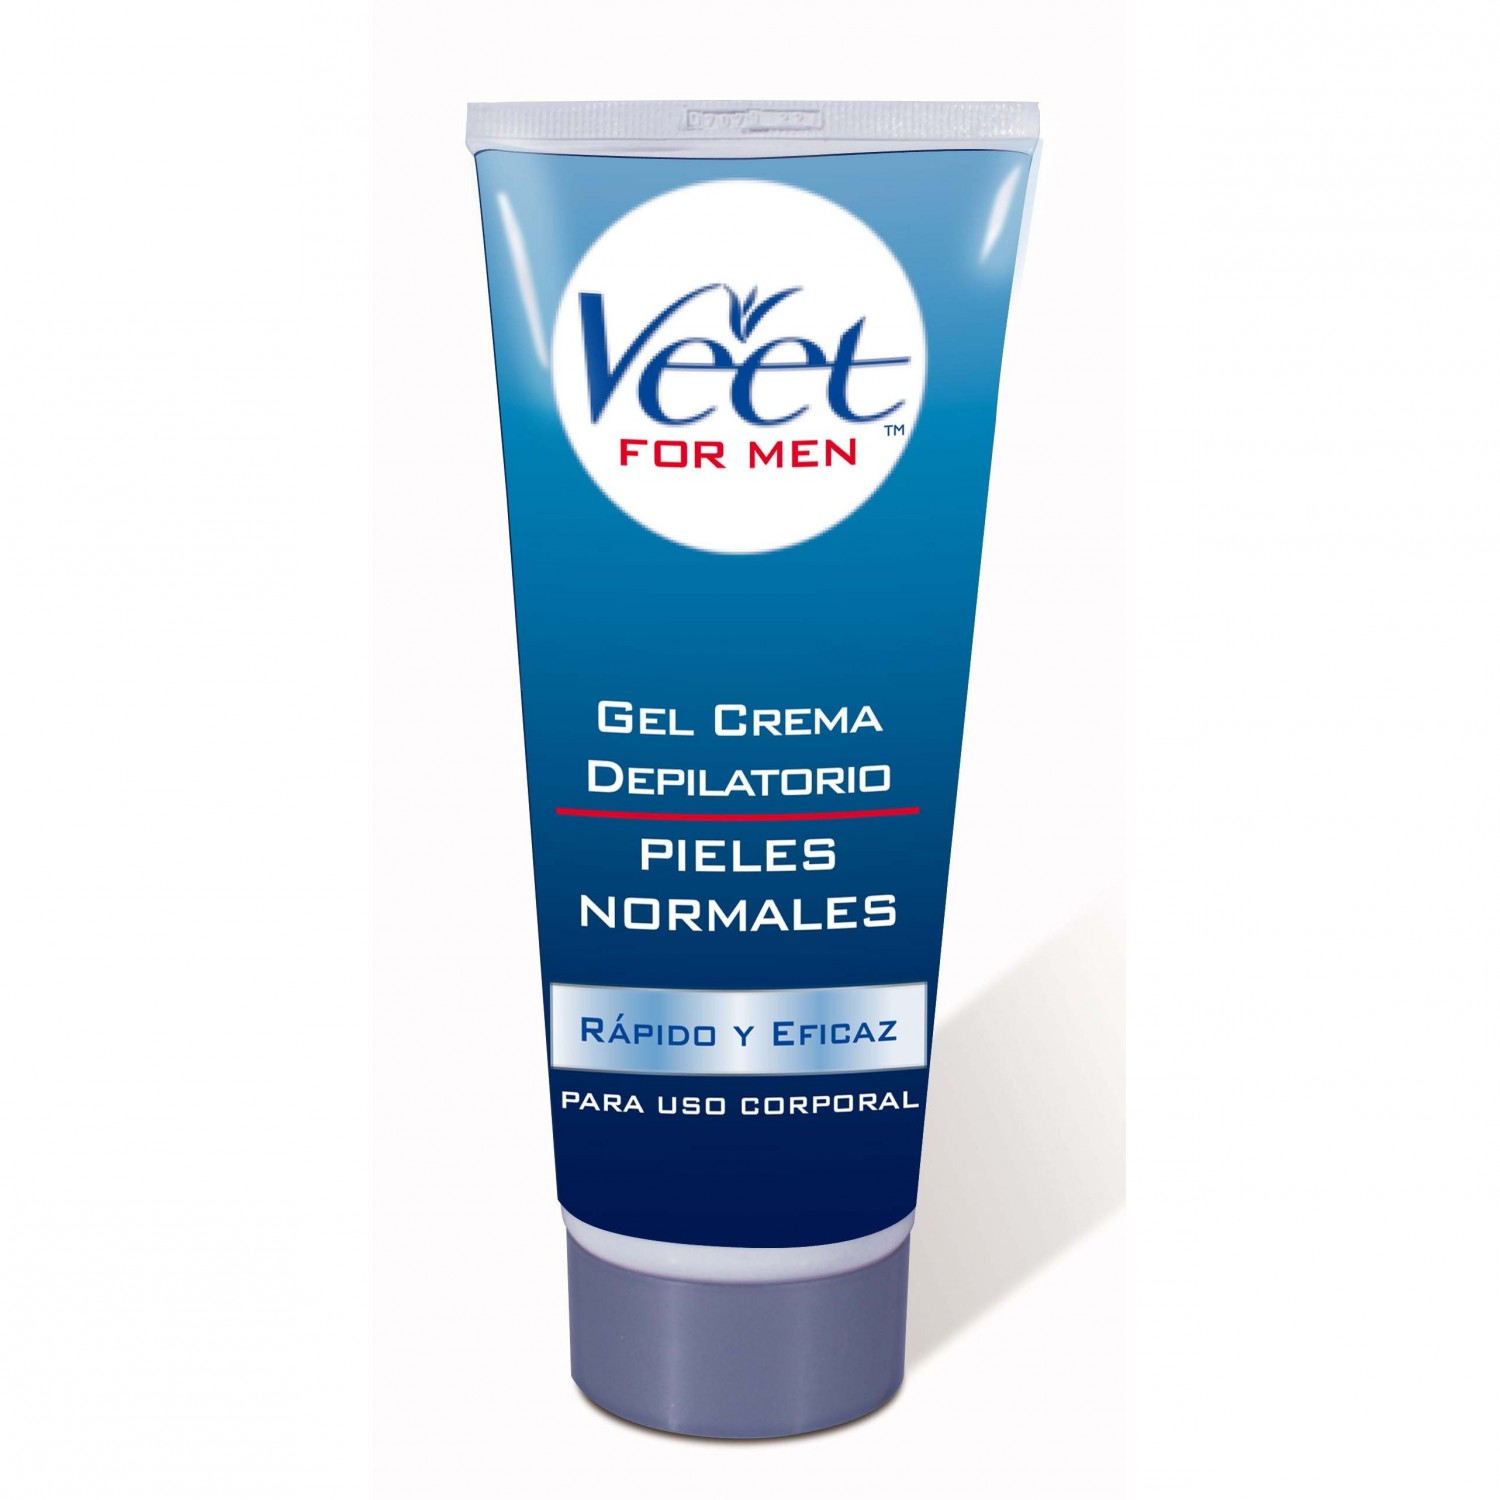 Veet For Men gel crema depilatorio piel normal uso corporal tubo de 20cl.